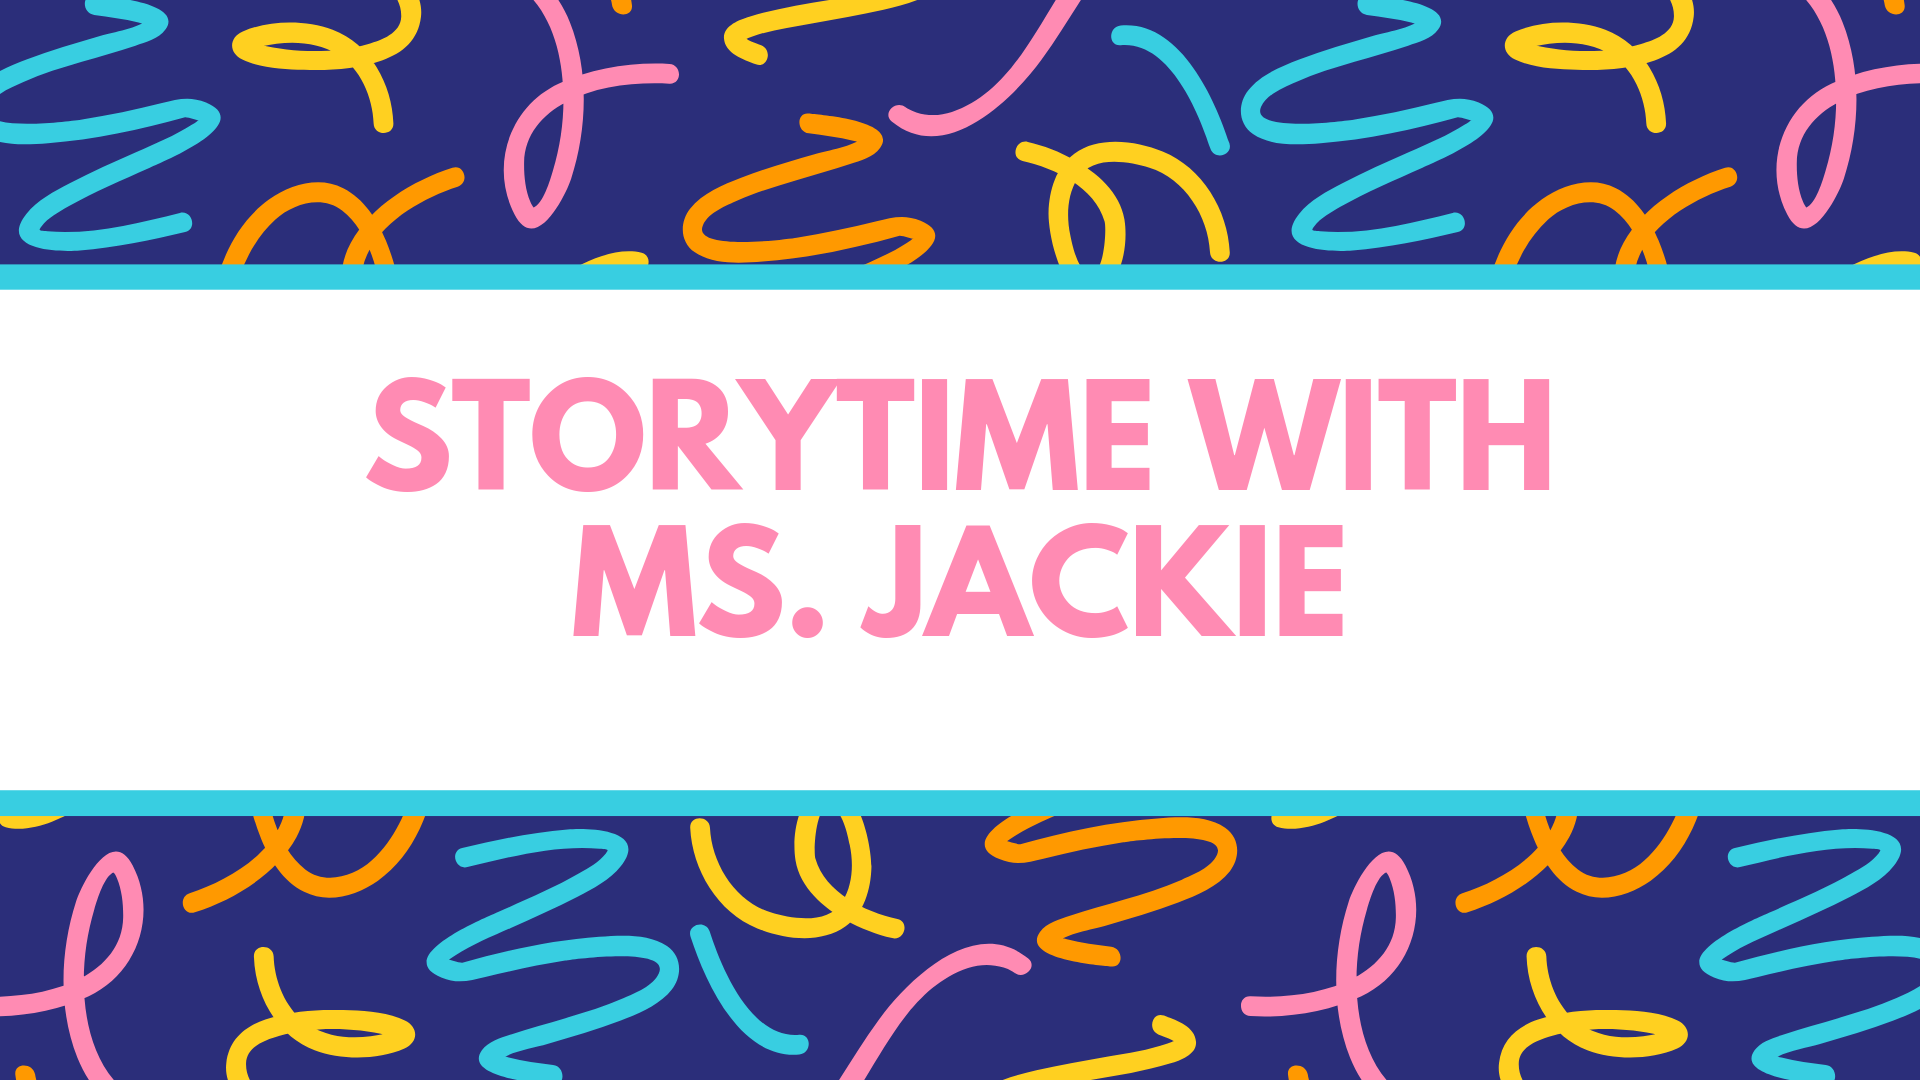 Storytime with Ms. Jackie